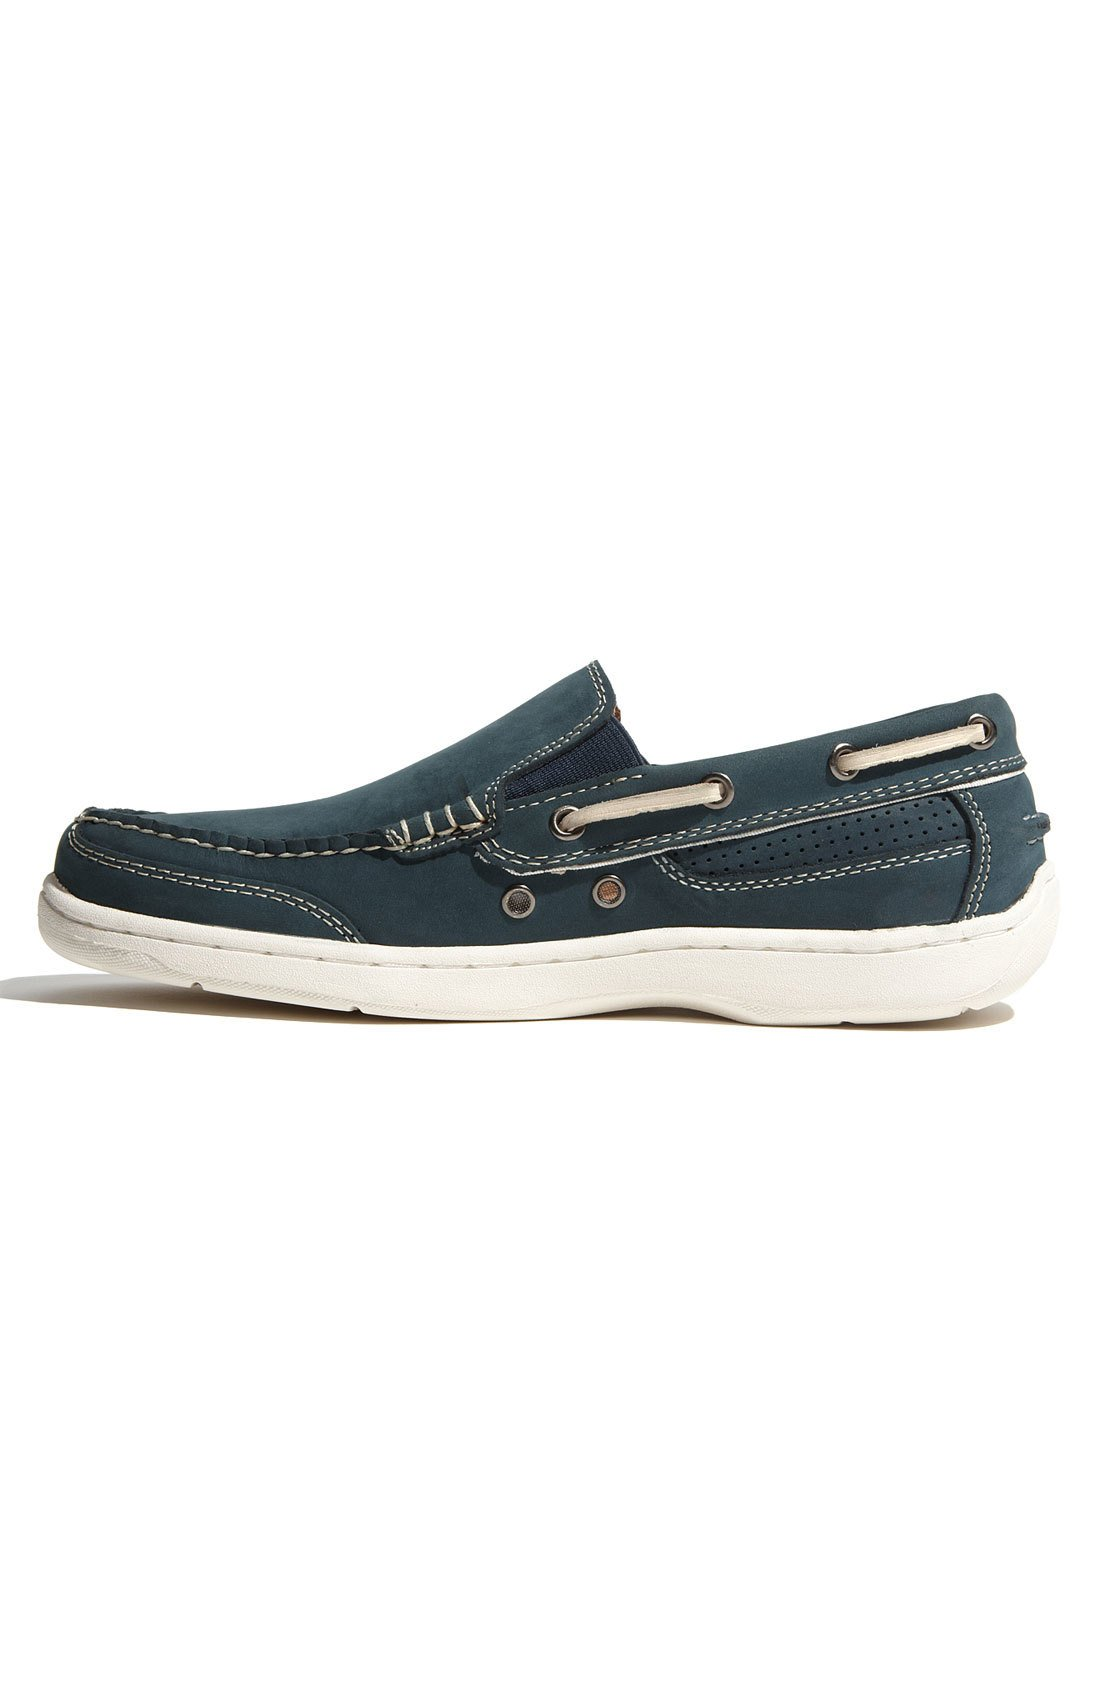 Tommy Bahama First Mate-Two Tone Shoes Navy Mens 11.5